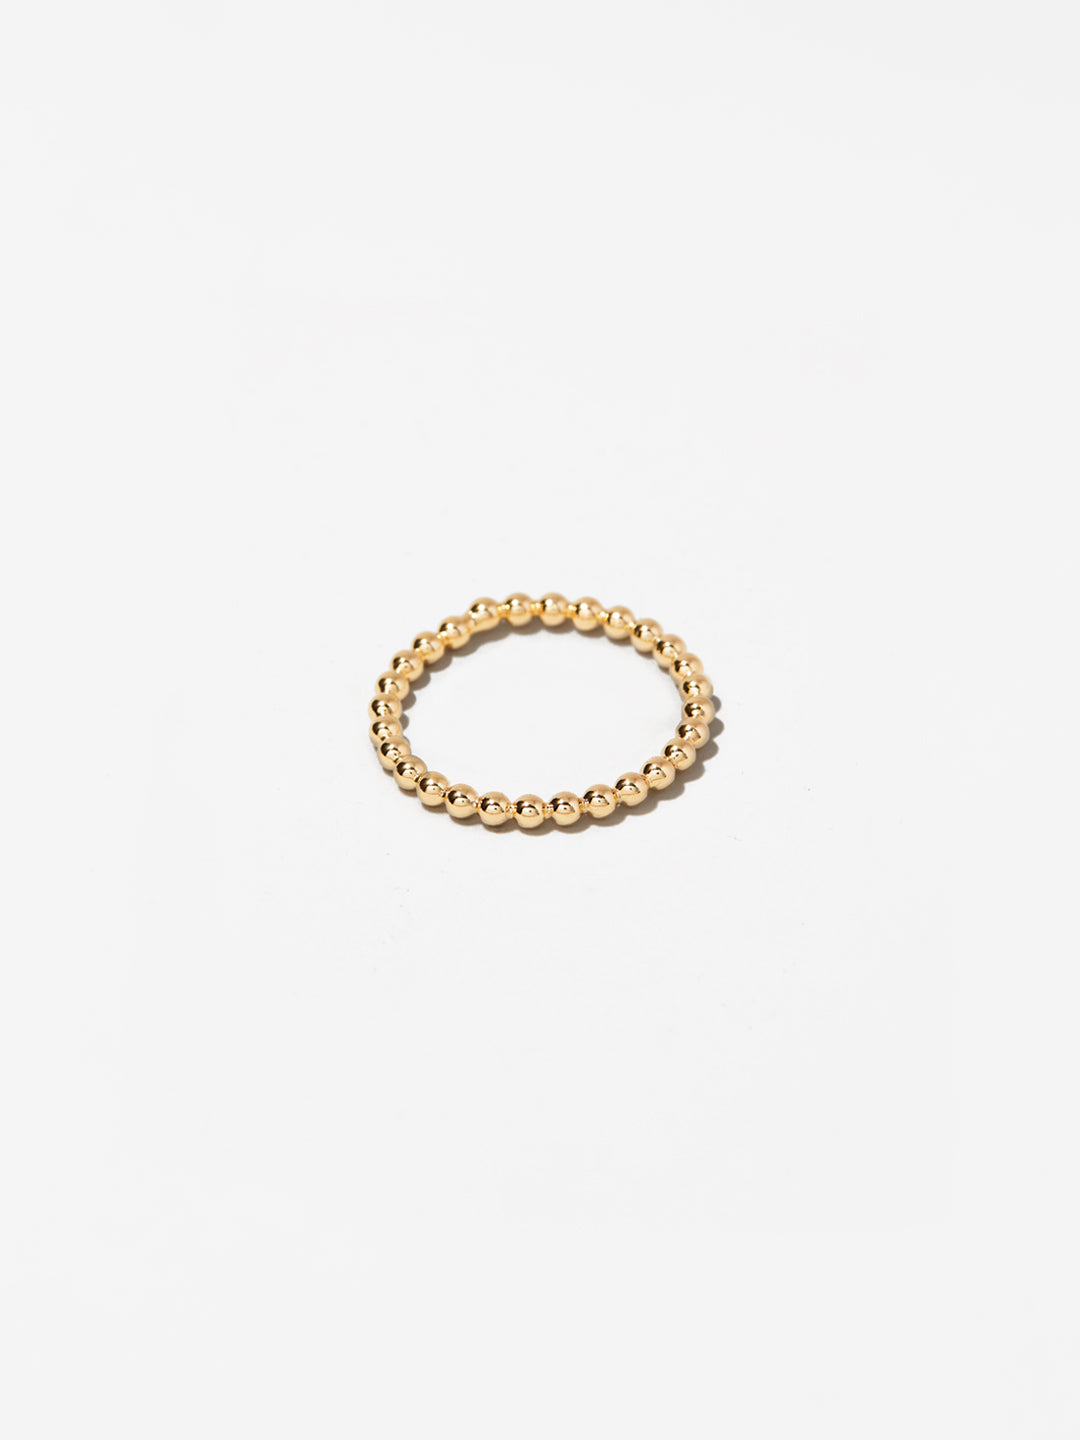 Ana Luisa Rings Stacking RIngs Stackable Ring Olivia Gold